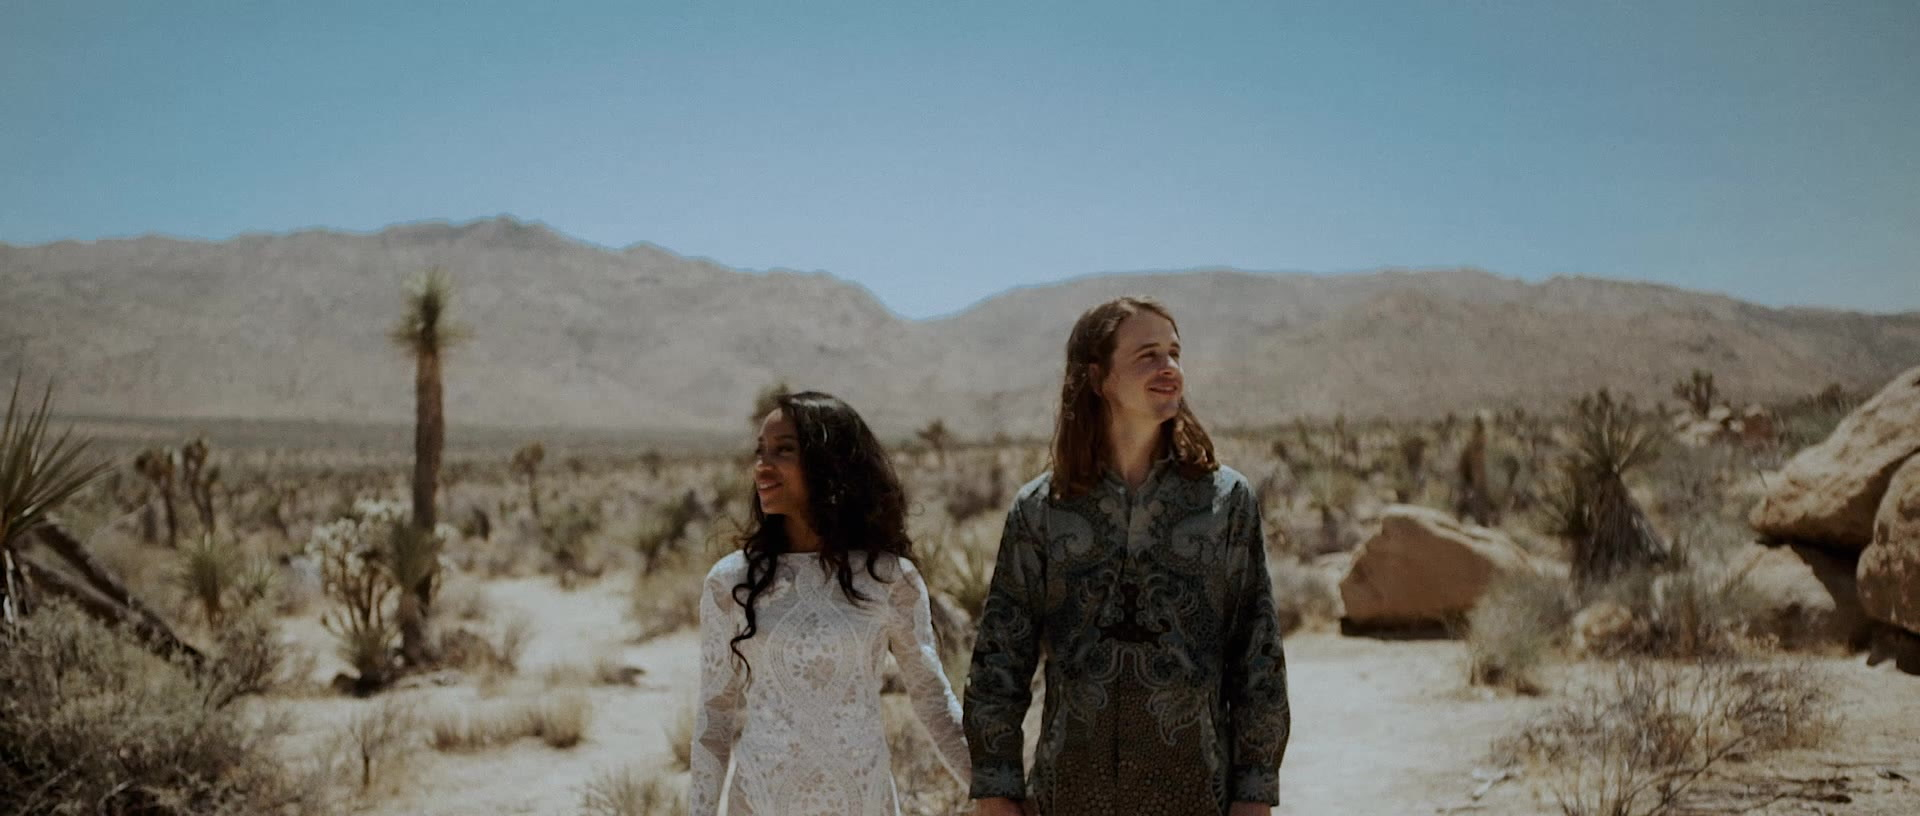 Scottie + Nashya | Joshua Tree, California | Sacred Sands